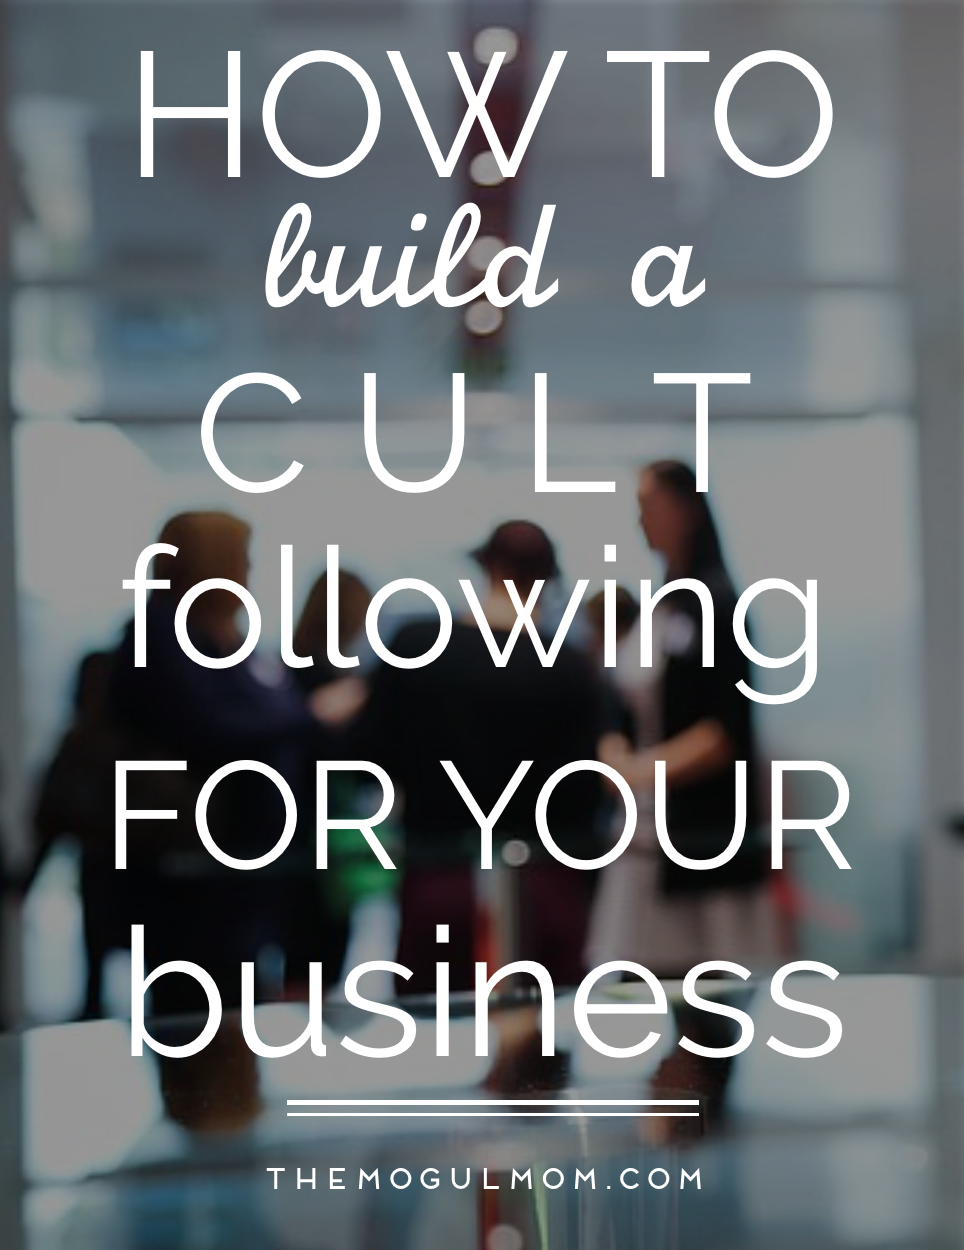 How to Build a Cult Following for Your Business